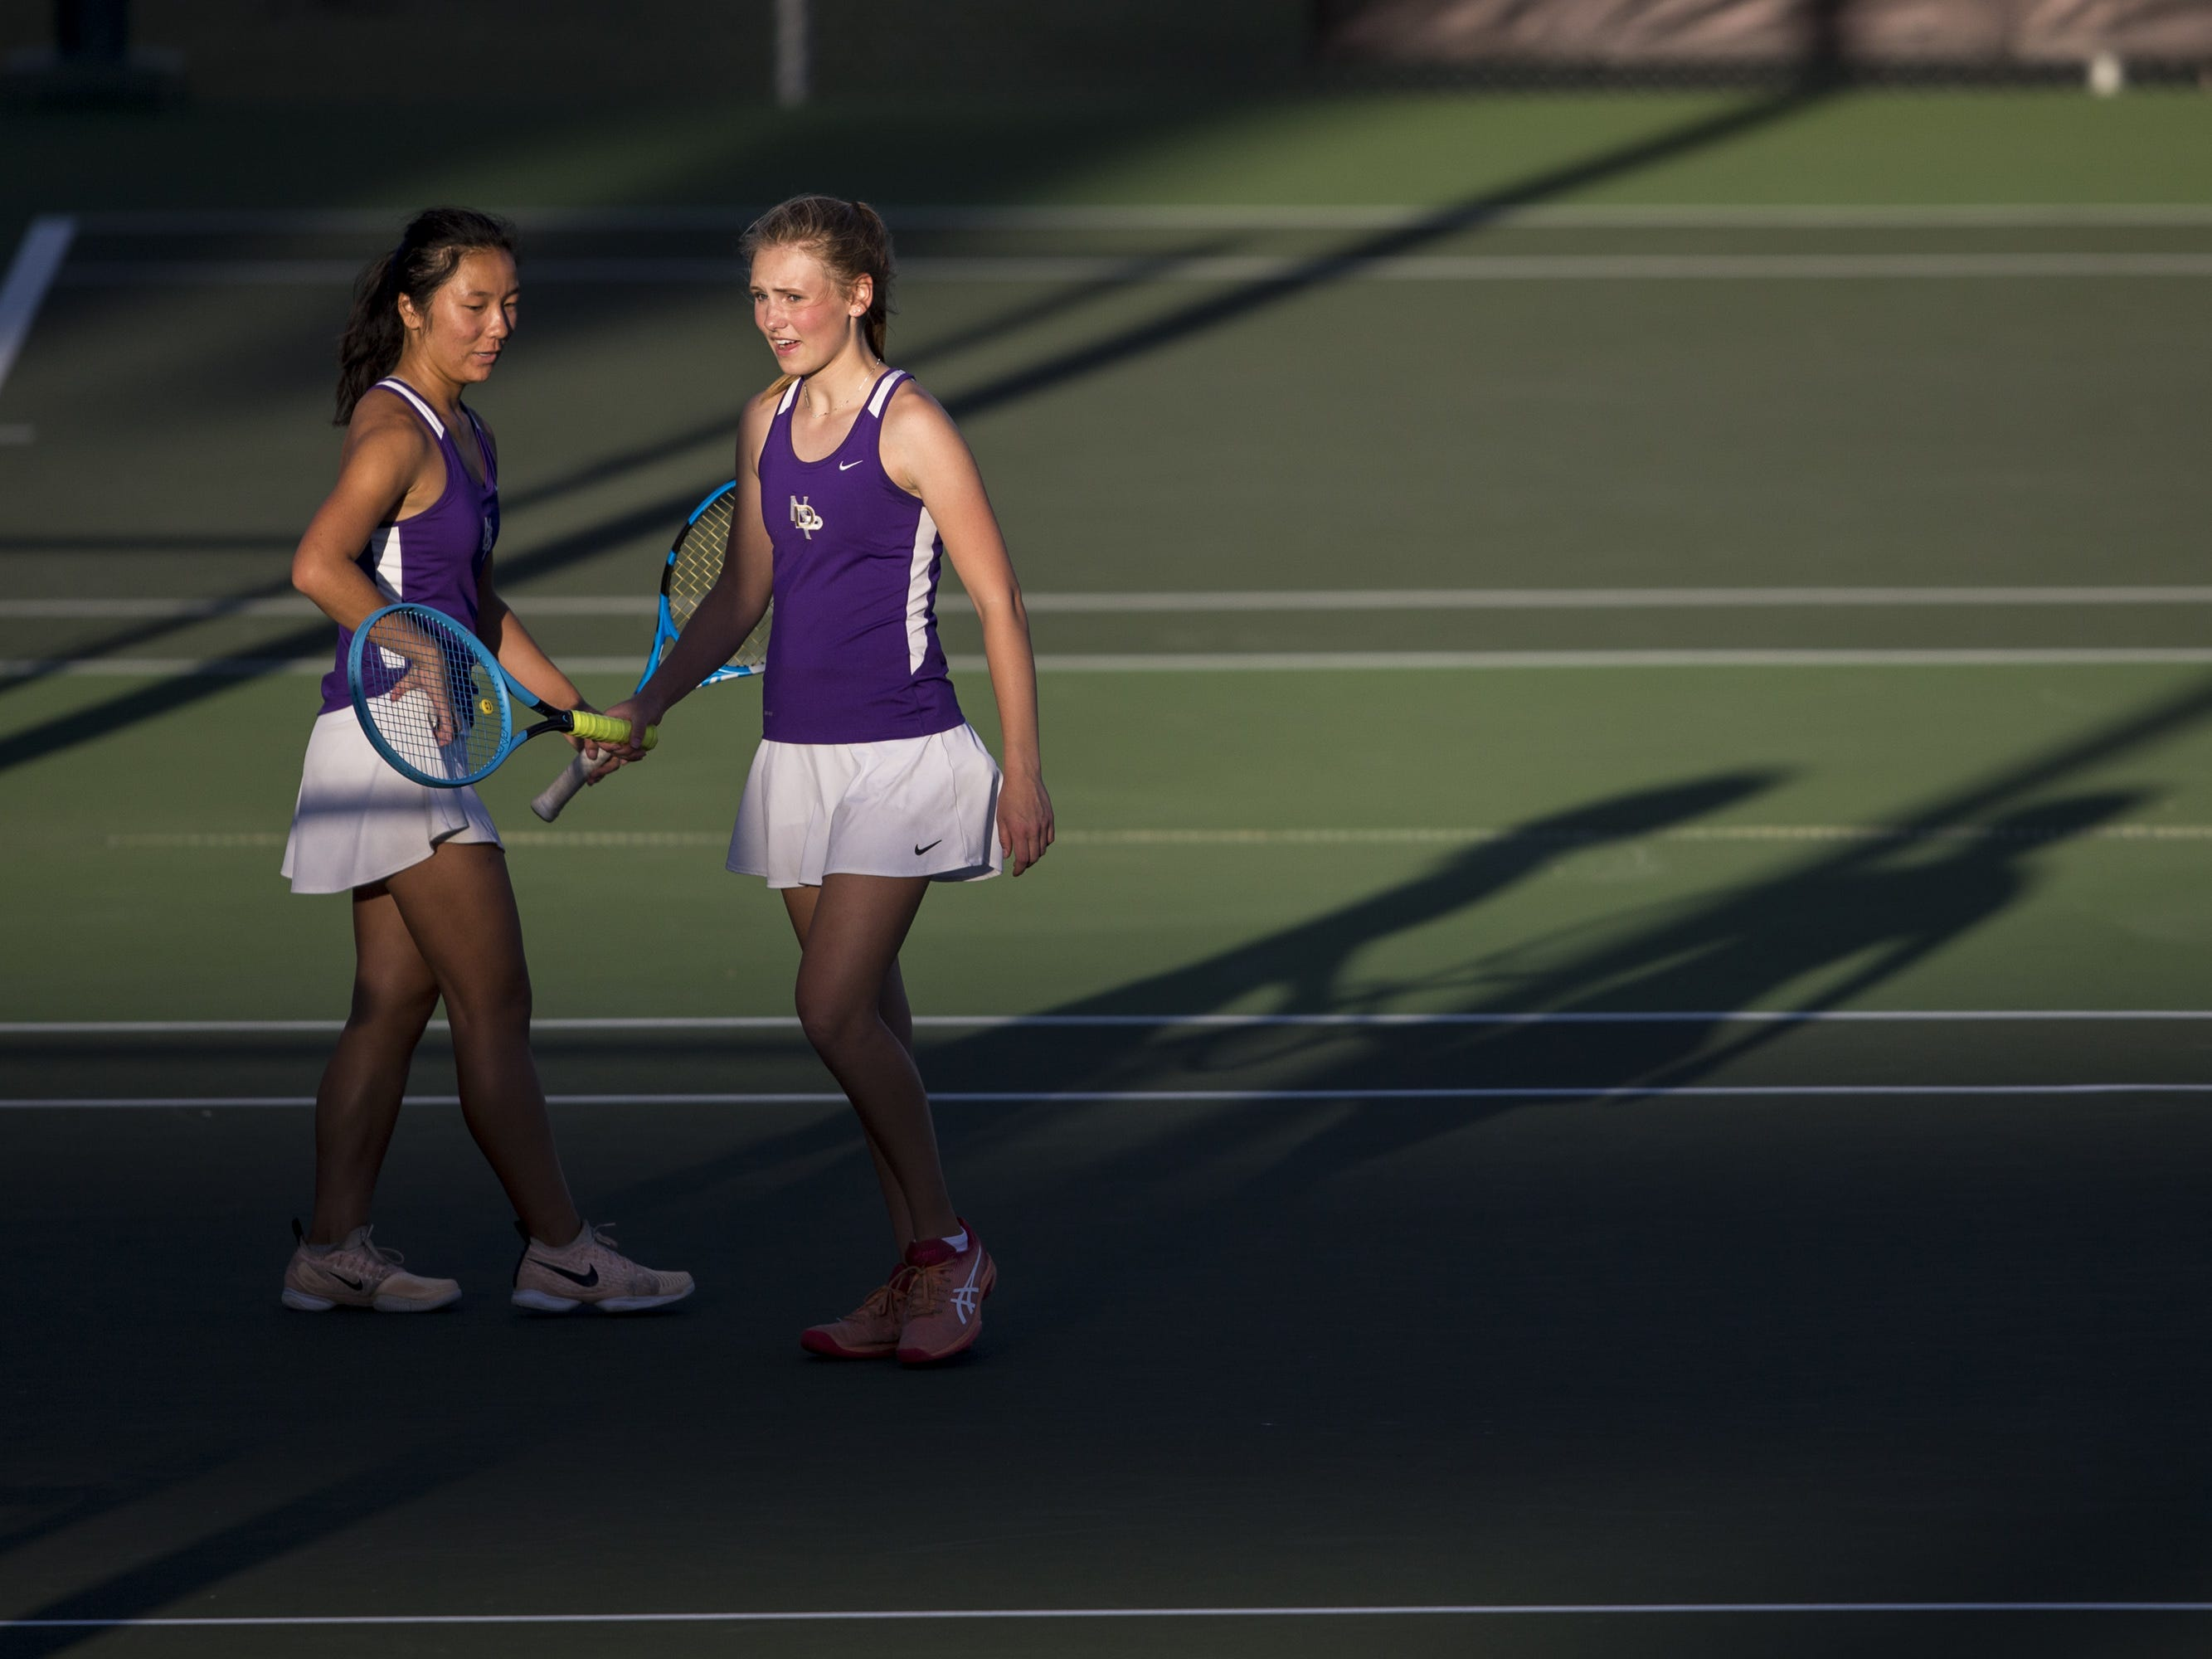 Notre Dame Prep's Natalie Hoffman (left) and Maysa Tuftin talk during the Division II Girls Tennis Doubles State Championship against Cactus Shadows on Monday, April 29, 2019, at Whiteman Tennis Center in Tempe, Ariz.